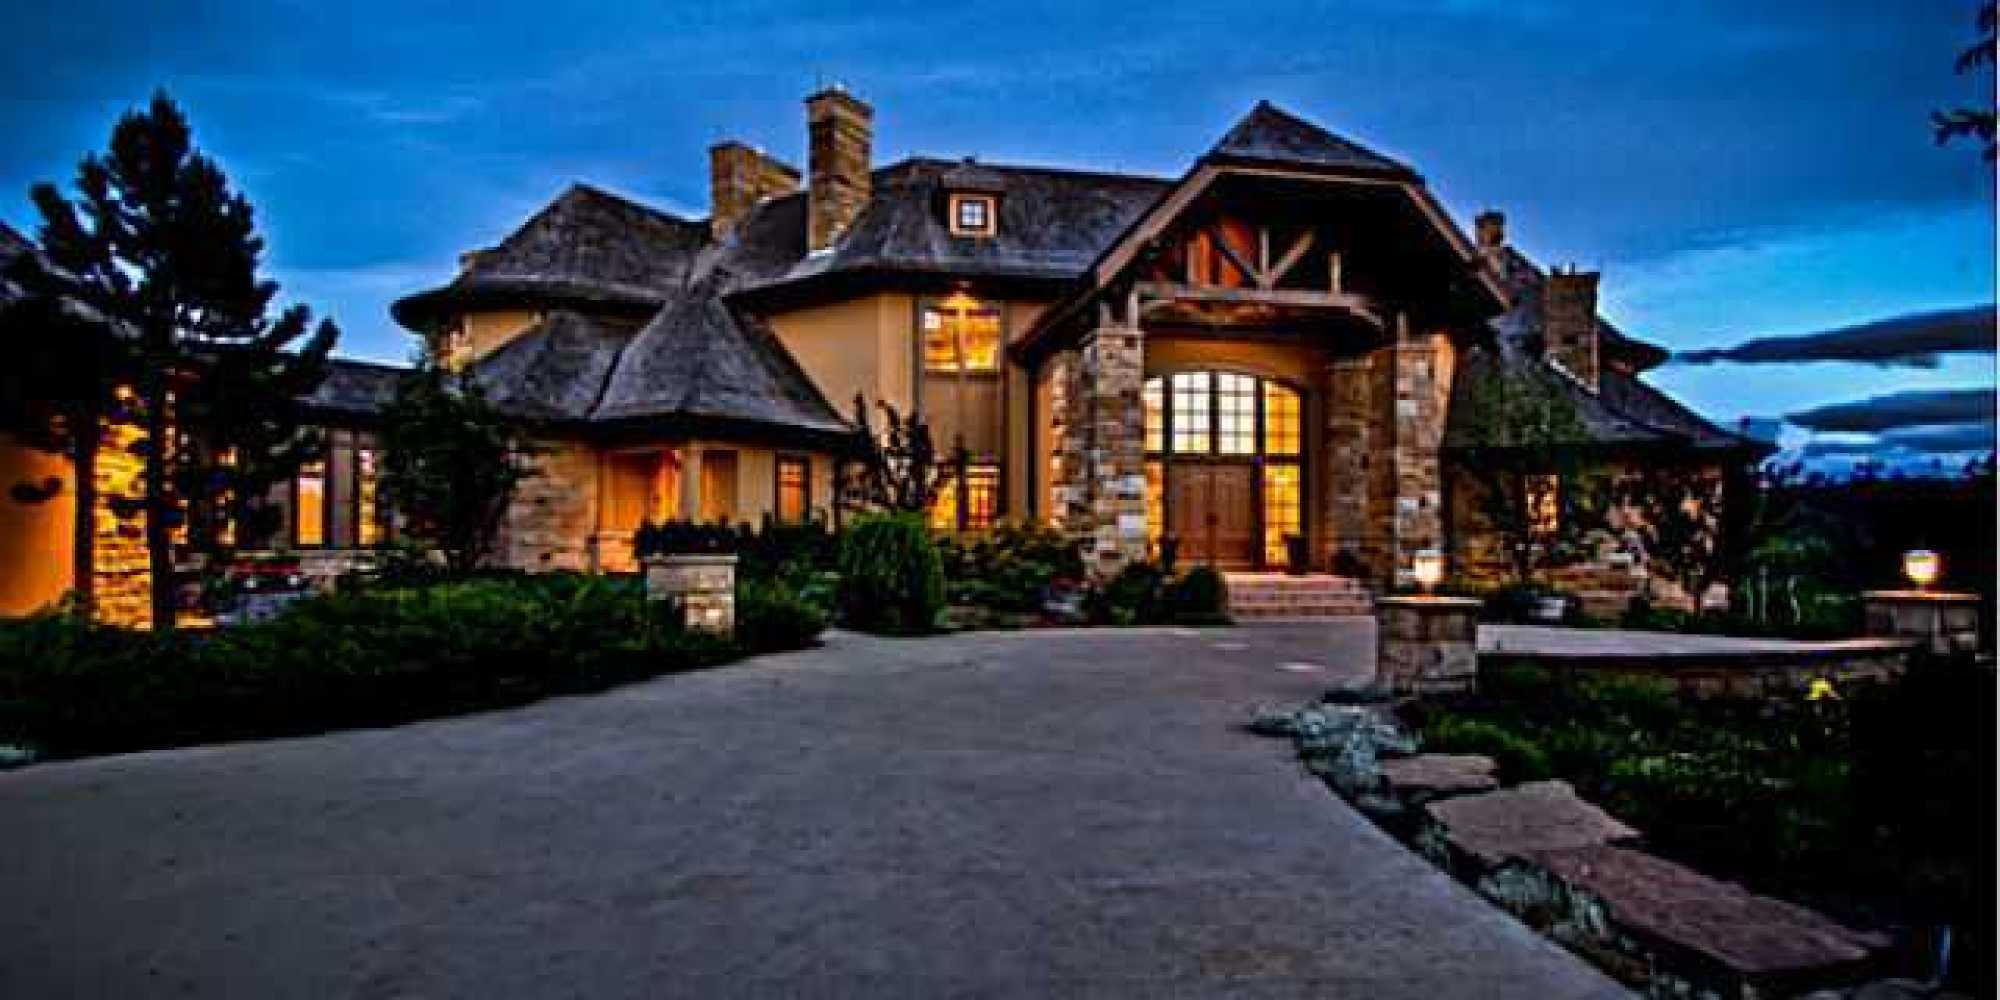 Alberta 39 s most expensive homes for sale the top 3 photos for Big houses in america